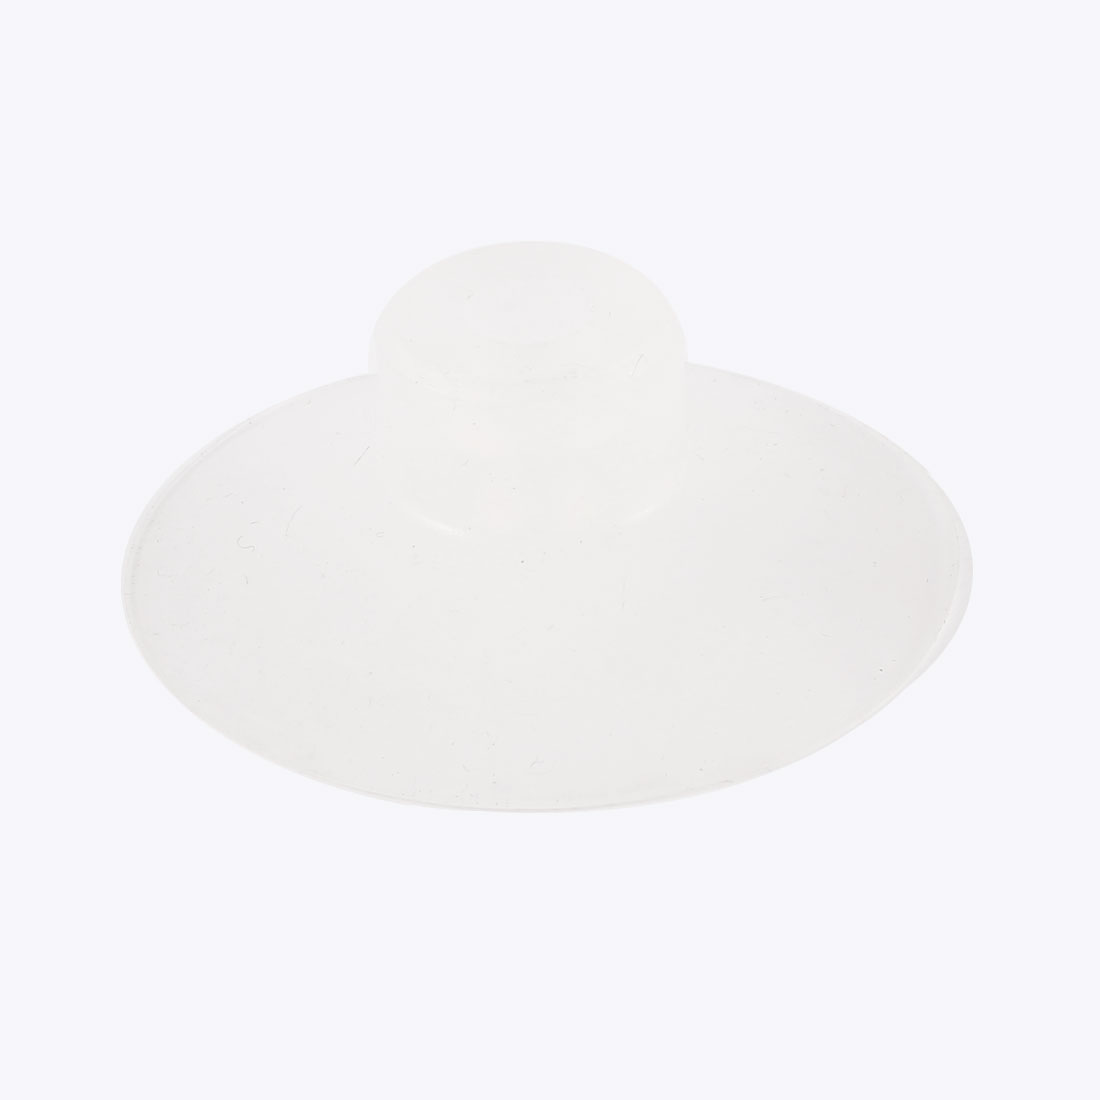 50mm x 14mm Silicone Ozone Resistance Vacuum Equipment Suction Cup Sucker